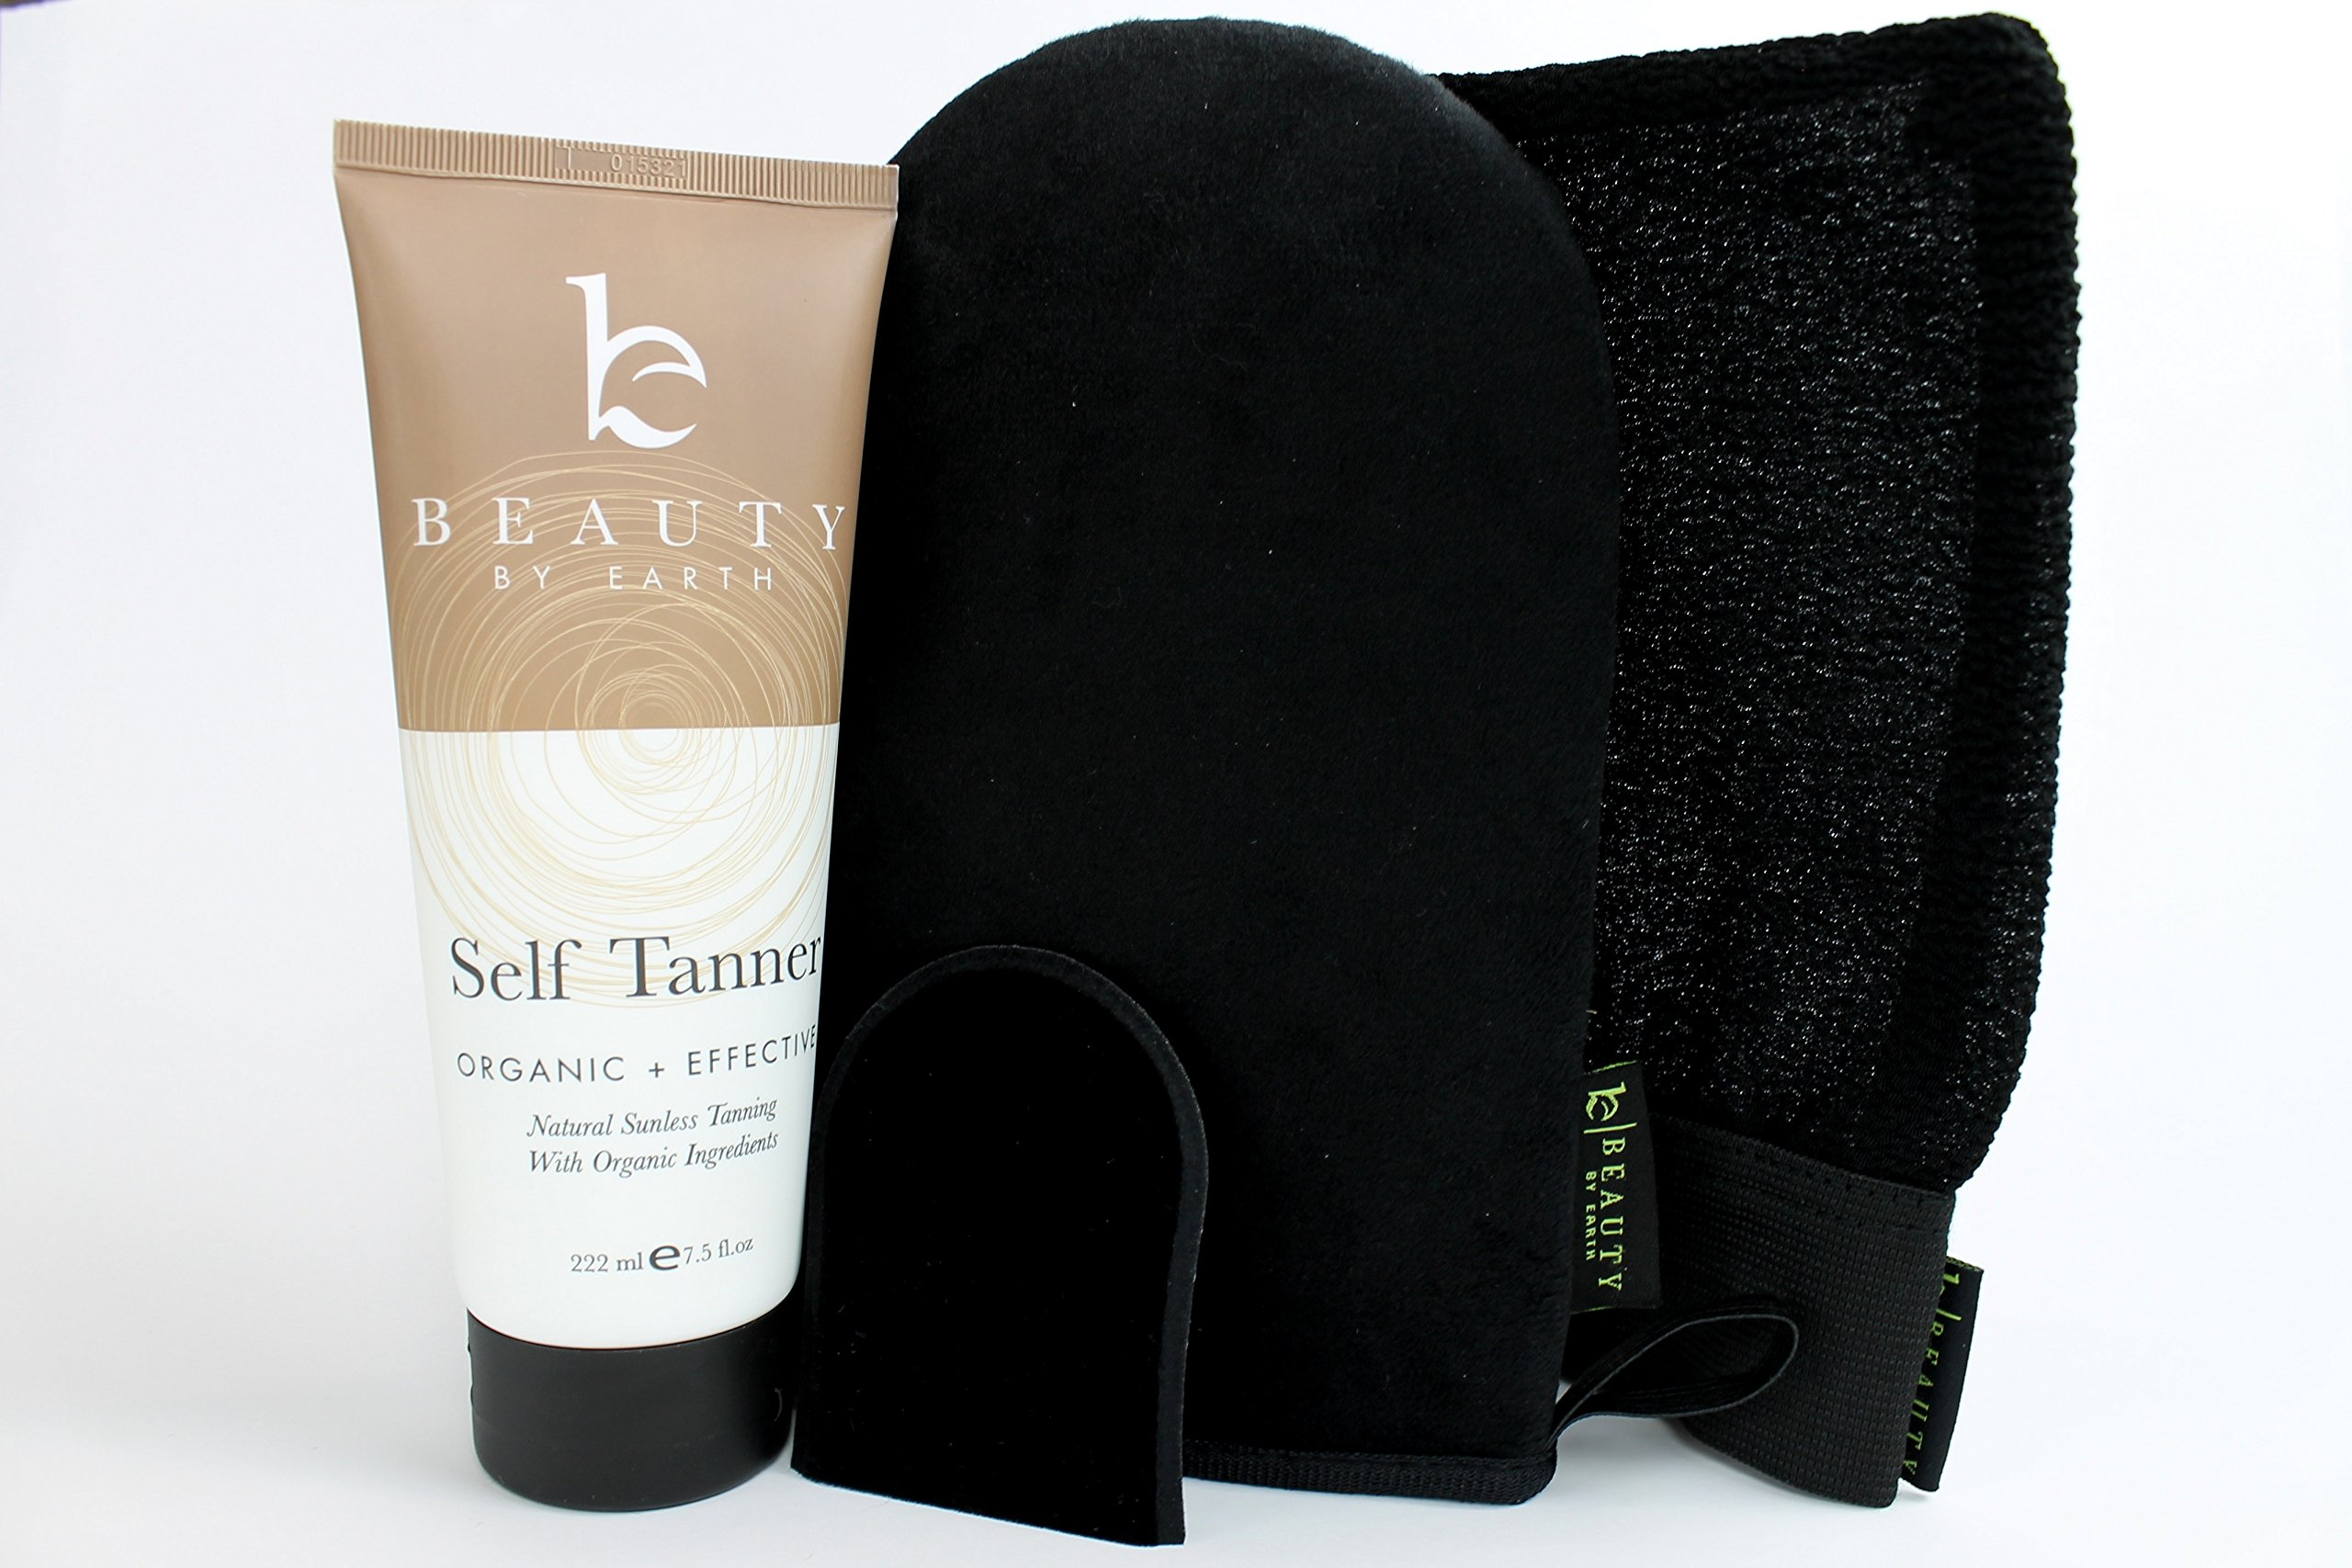 Self Tanner & Tanning Application Kit - Bundle of Sunless Tanning Lotion Made With Natural & Organic Ingredients, Exfoliation Mitt, Body and Face Applicator Glove for a Professional Self Tan by Beauty by Earth (Image #4)